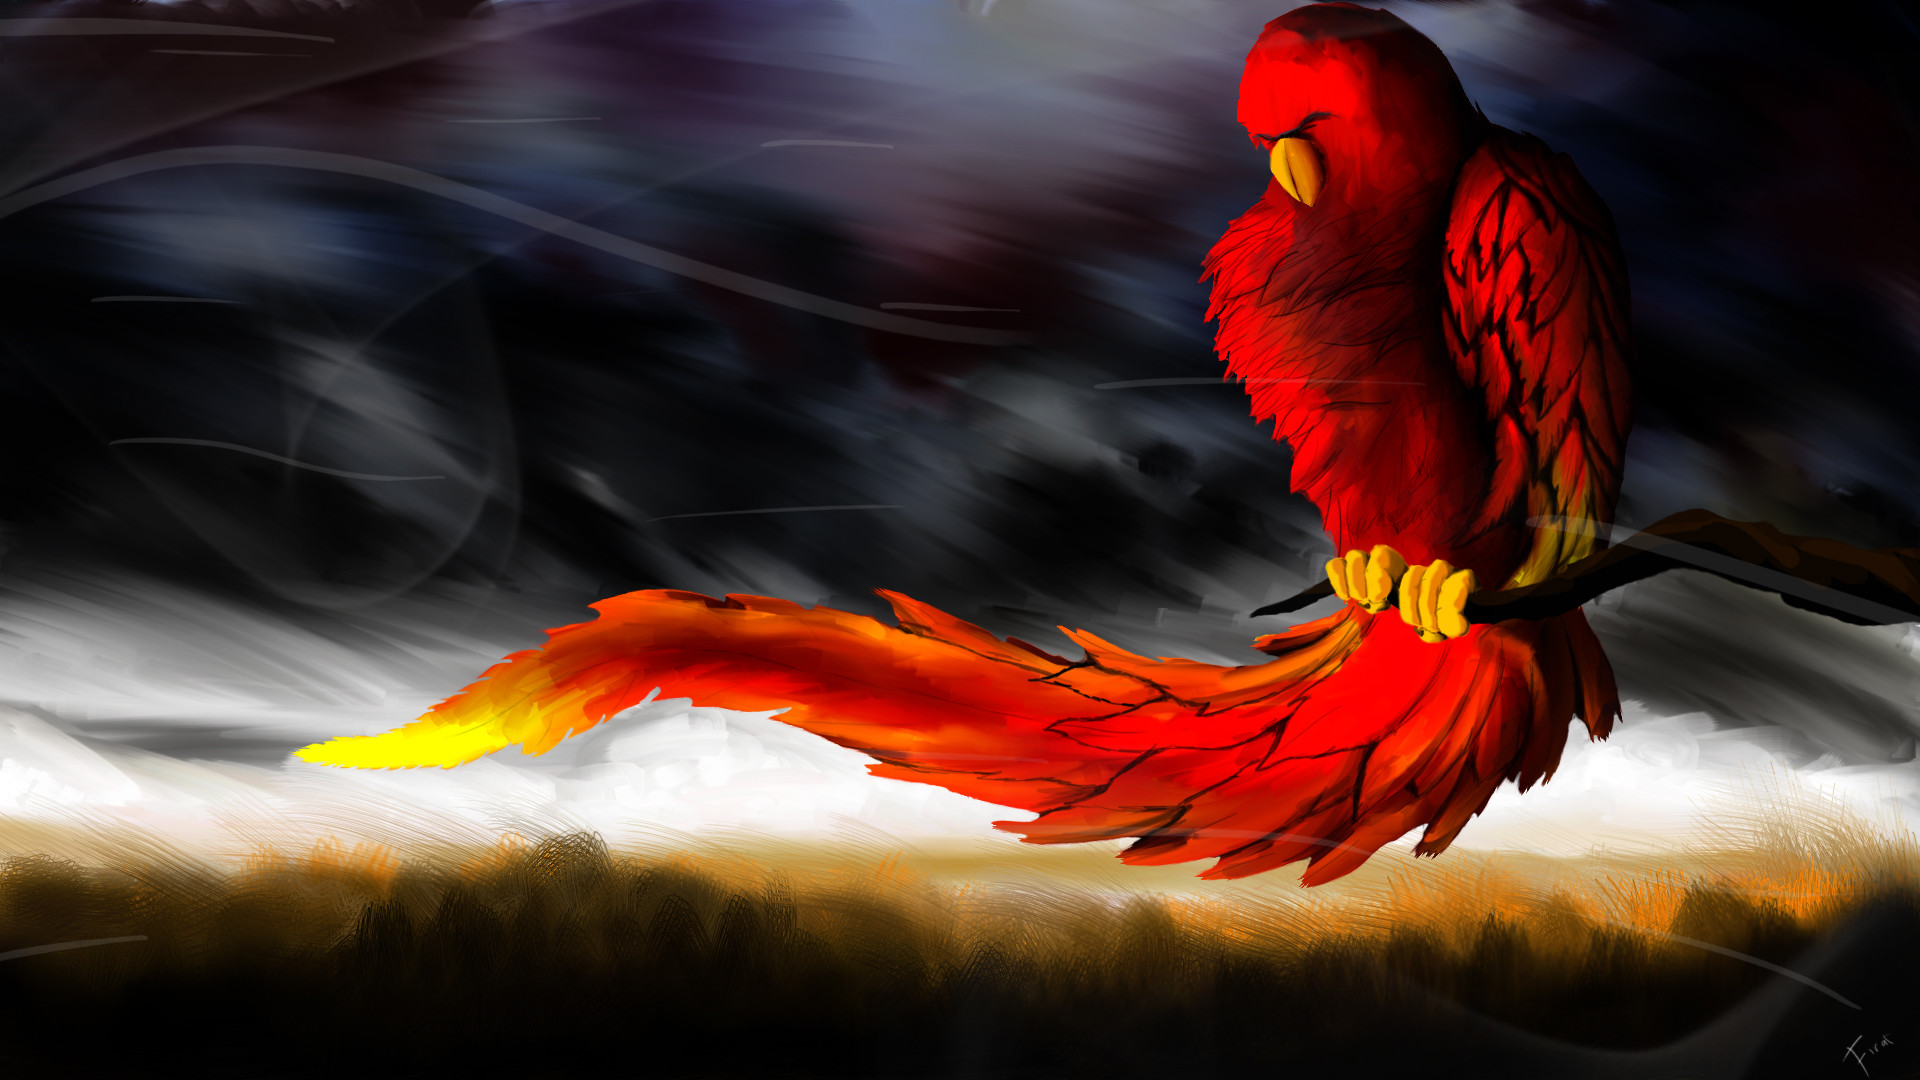 1920x1080 3d-parrot-cool-wallpapers-hd-desktop-background.jpg